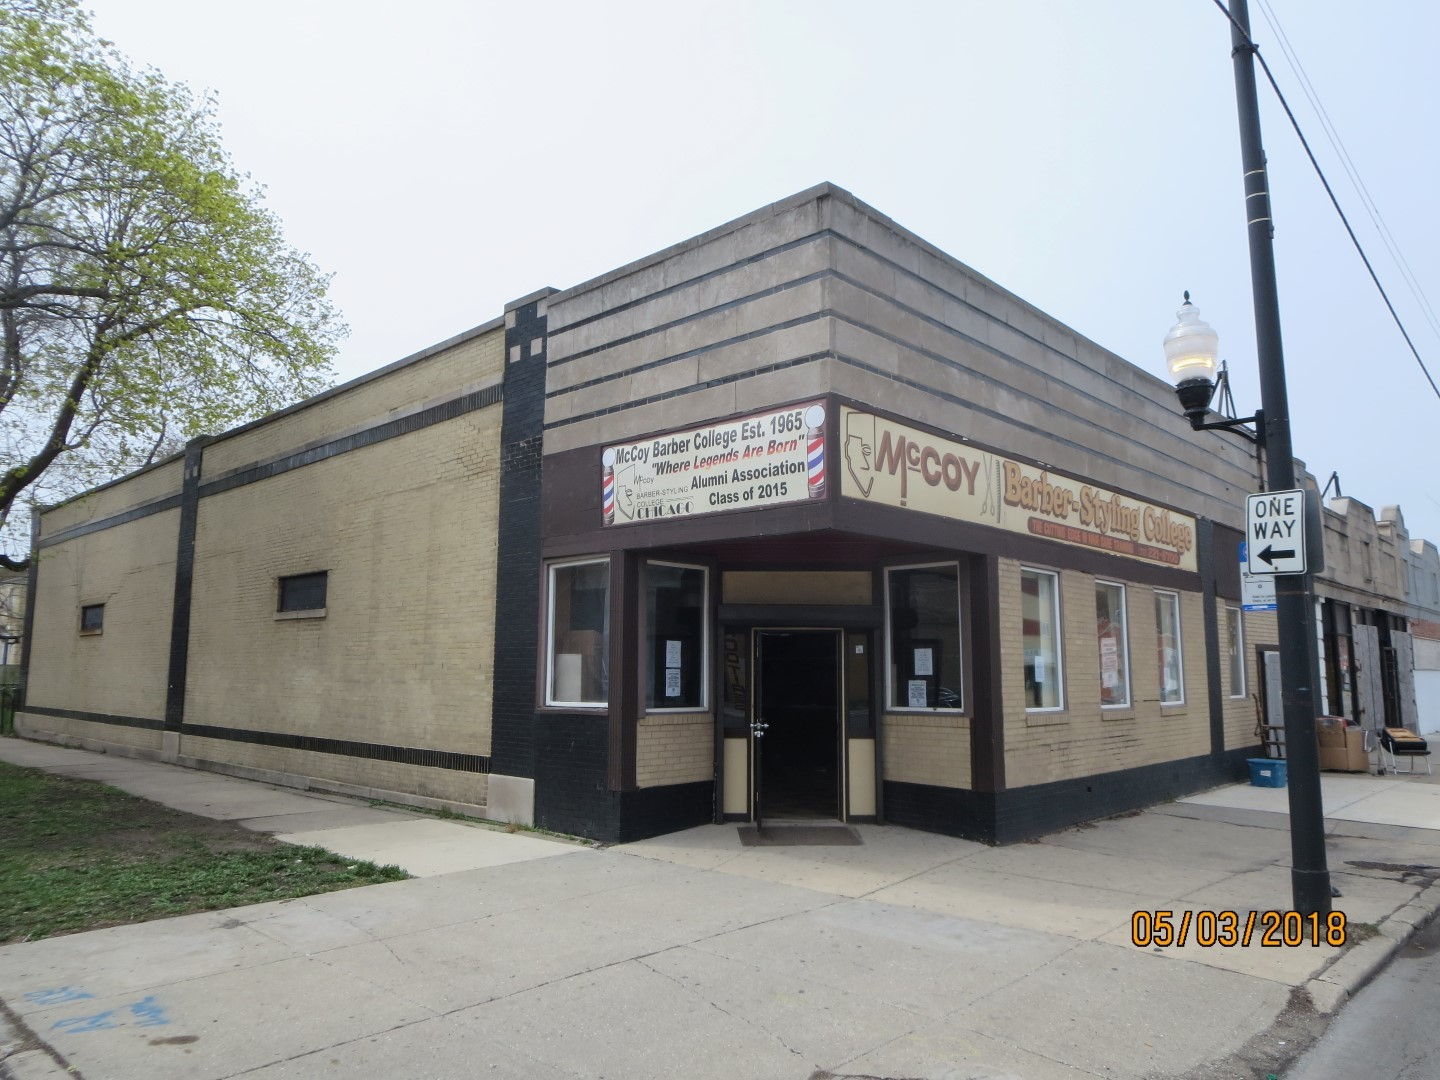 Large commercial property with fenced in yard, 4 bathrooms and tons of potential.  Located on 79th street with great exposure and drive by traffic.  This building can accommodate a number of uses.   NOT BANK OWNED AND NOT A SHORT SALE, OWNERS ARE LOCAL AND MOTIVATED.   BEING SOLD AS-IS, SO PLEASE INSPECT PRIOR TO SUBMITTING AN OFFER.  PLEASE NOTE: 0% TAX PRORATIONS ARE OFFERED, THE SELLER WILL PAY CURRENT AND ALL PRIOR TAX BUT 0% CREDIT FOR FUTURE BILLS.  SPECIAL WARRANTY DEED AT CLOSING. NO SURVEY.  FOR FASTER RESPONSE PLEASE USE SELLERS CONTRACT, ADDENDUM AND DISCLOSURES UNDER DOCUMENTS.